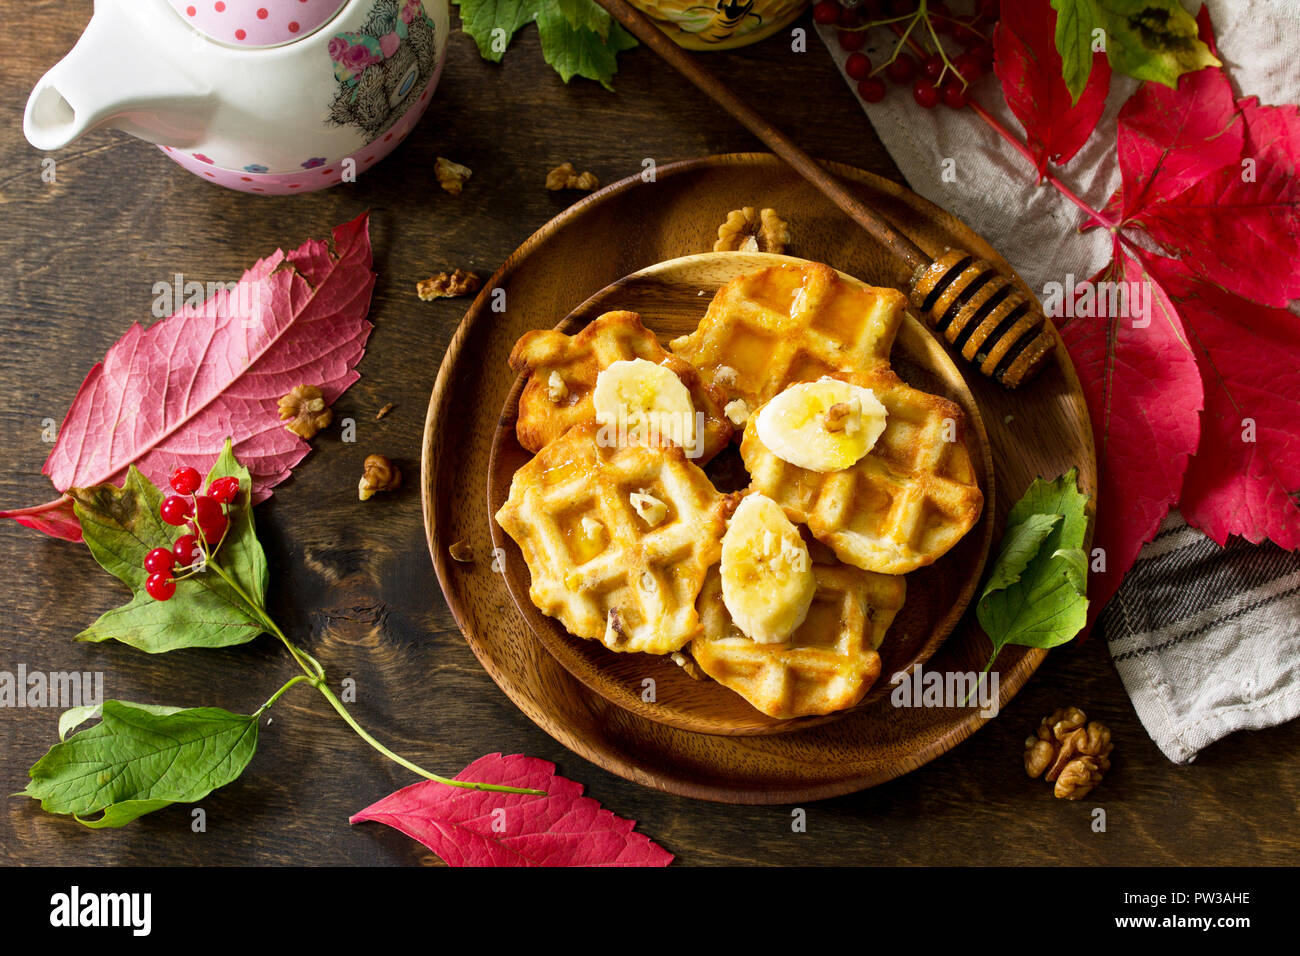 Thanksgiving baking. Belgian Walnut Wafers on a wooden kitchen table, served with fresh banana slices and honey. Top view flat lay background. - Stock Image